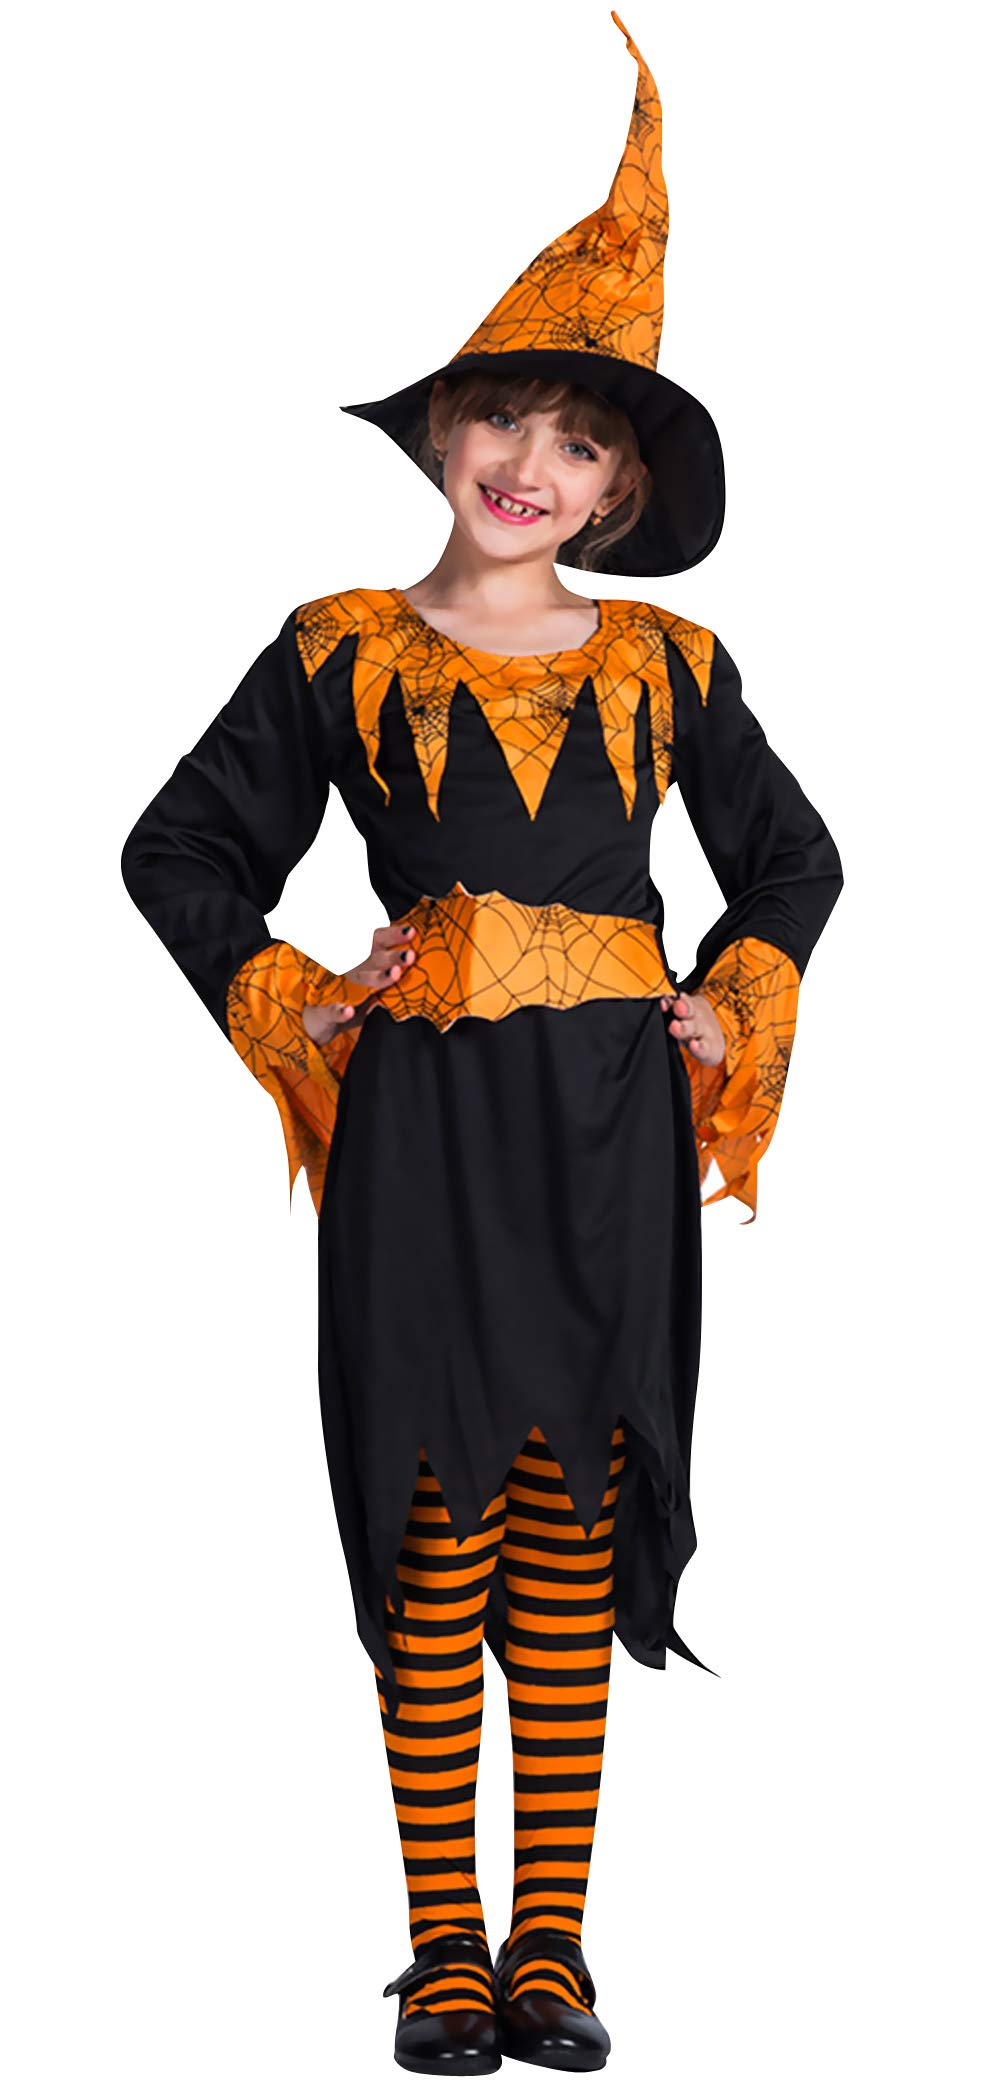 Little Girls Long Sleeve Halloween Pumpkin Witch Dress Up Set Cosplay Outfit L for 12-14 Y by Eraspooky (Image #1)